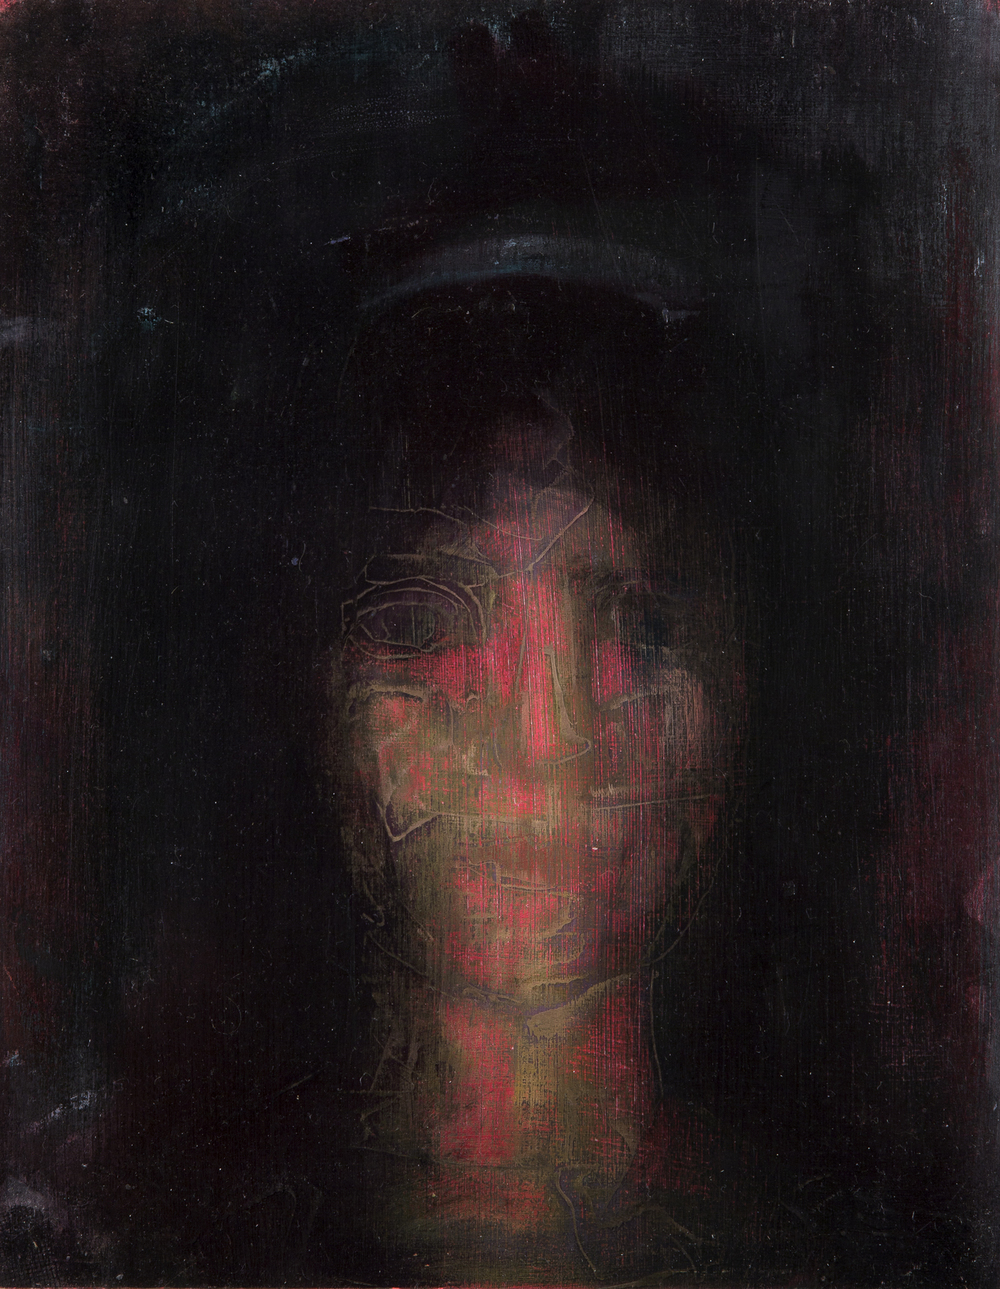 Maria Luisa's Head (after Esteve), 2012